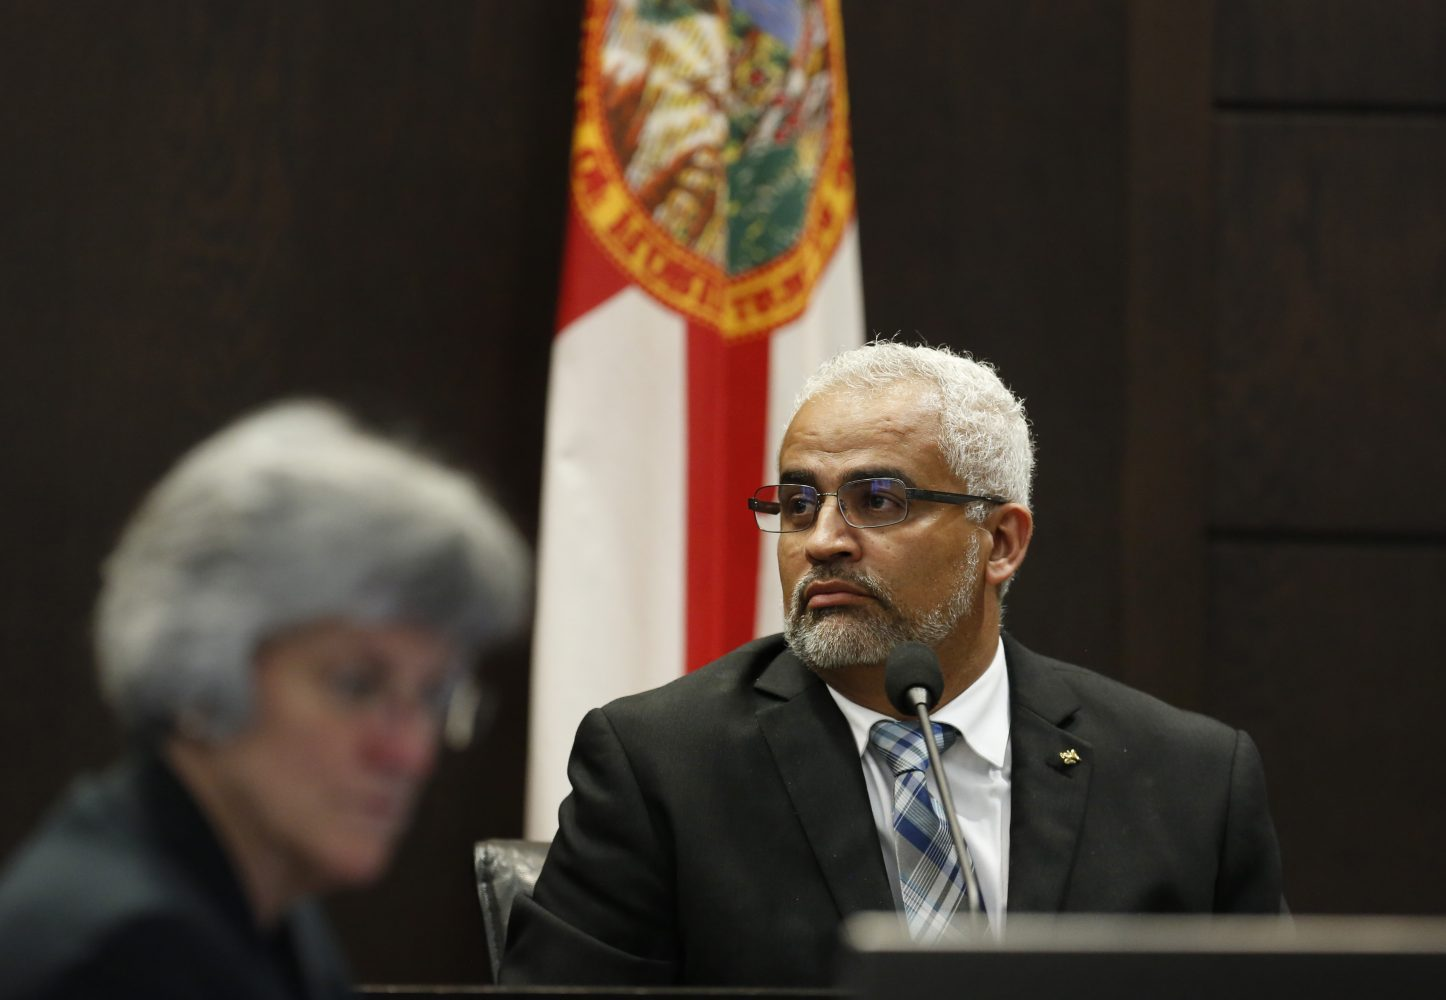 Carlos Aguilar, the father of slain University of Florida student Christian Aguilar, gives testimony in the murder trial of Pedro Bravo in courtroom 1B of the Alachua County Criminal Justice Center Tuesday, August 5, 2014.  (Doug Finger/The Gainesville Sun/Pool)